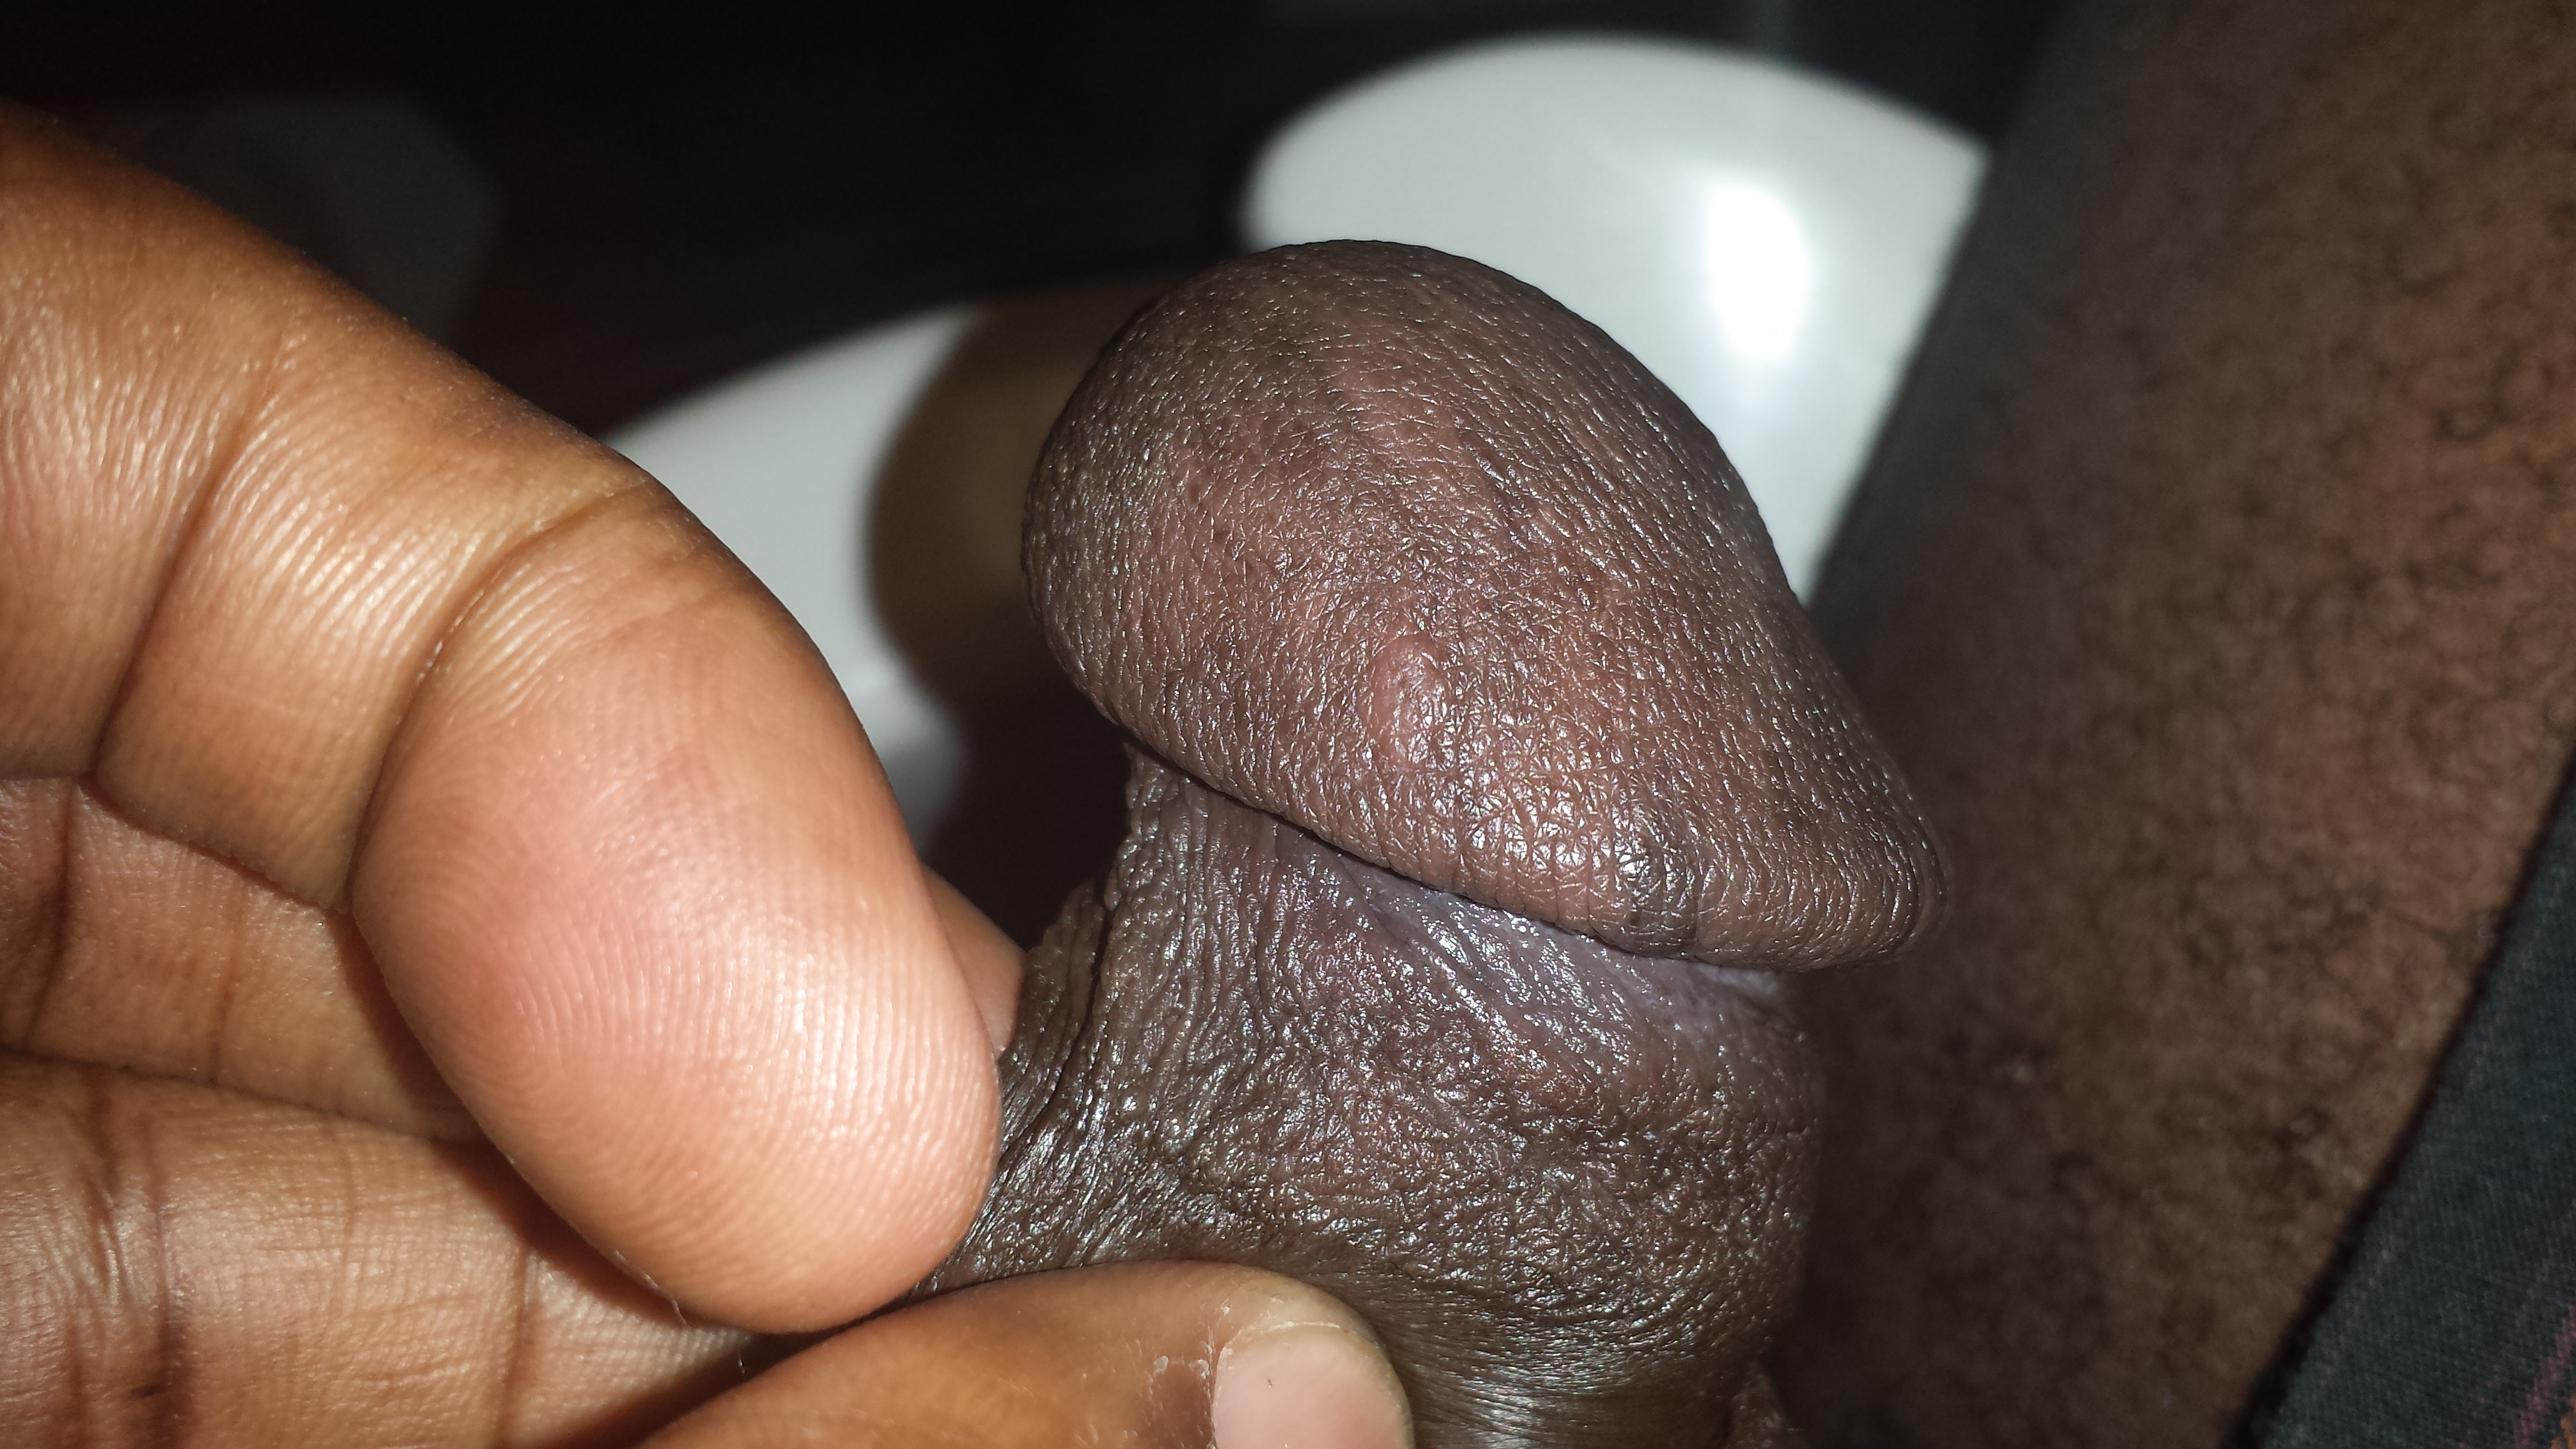 Masturbation with lube and sex toy 2